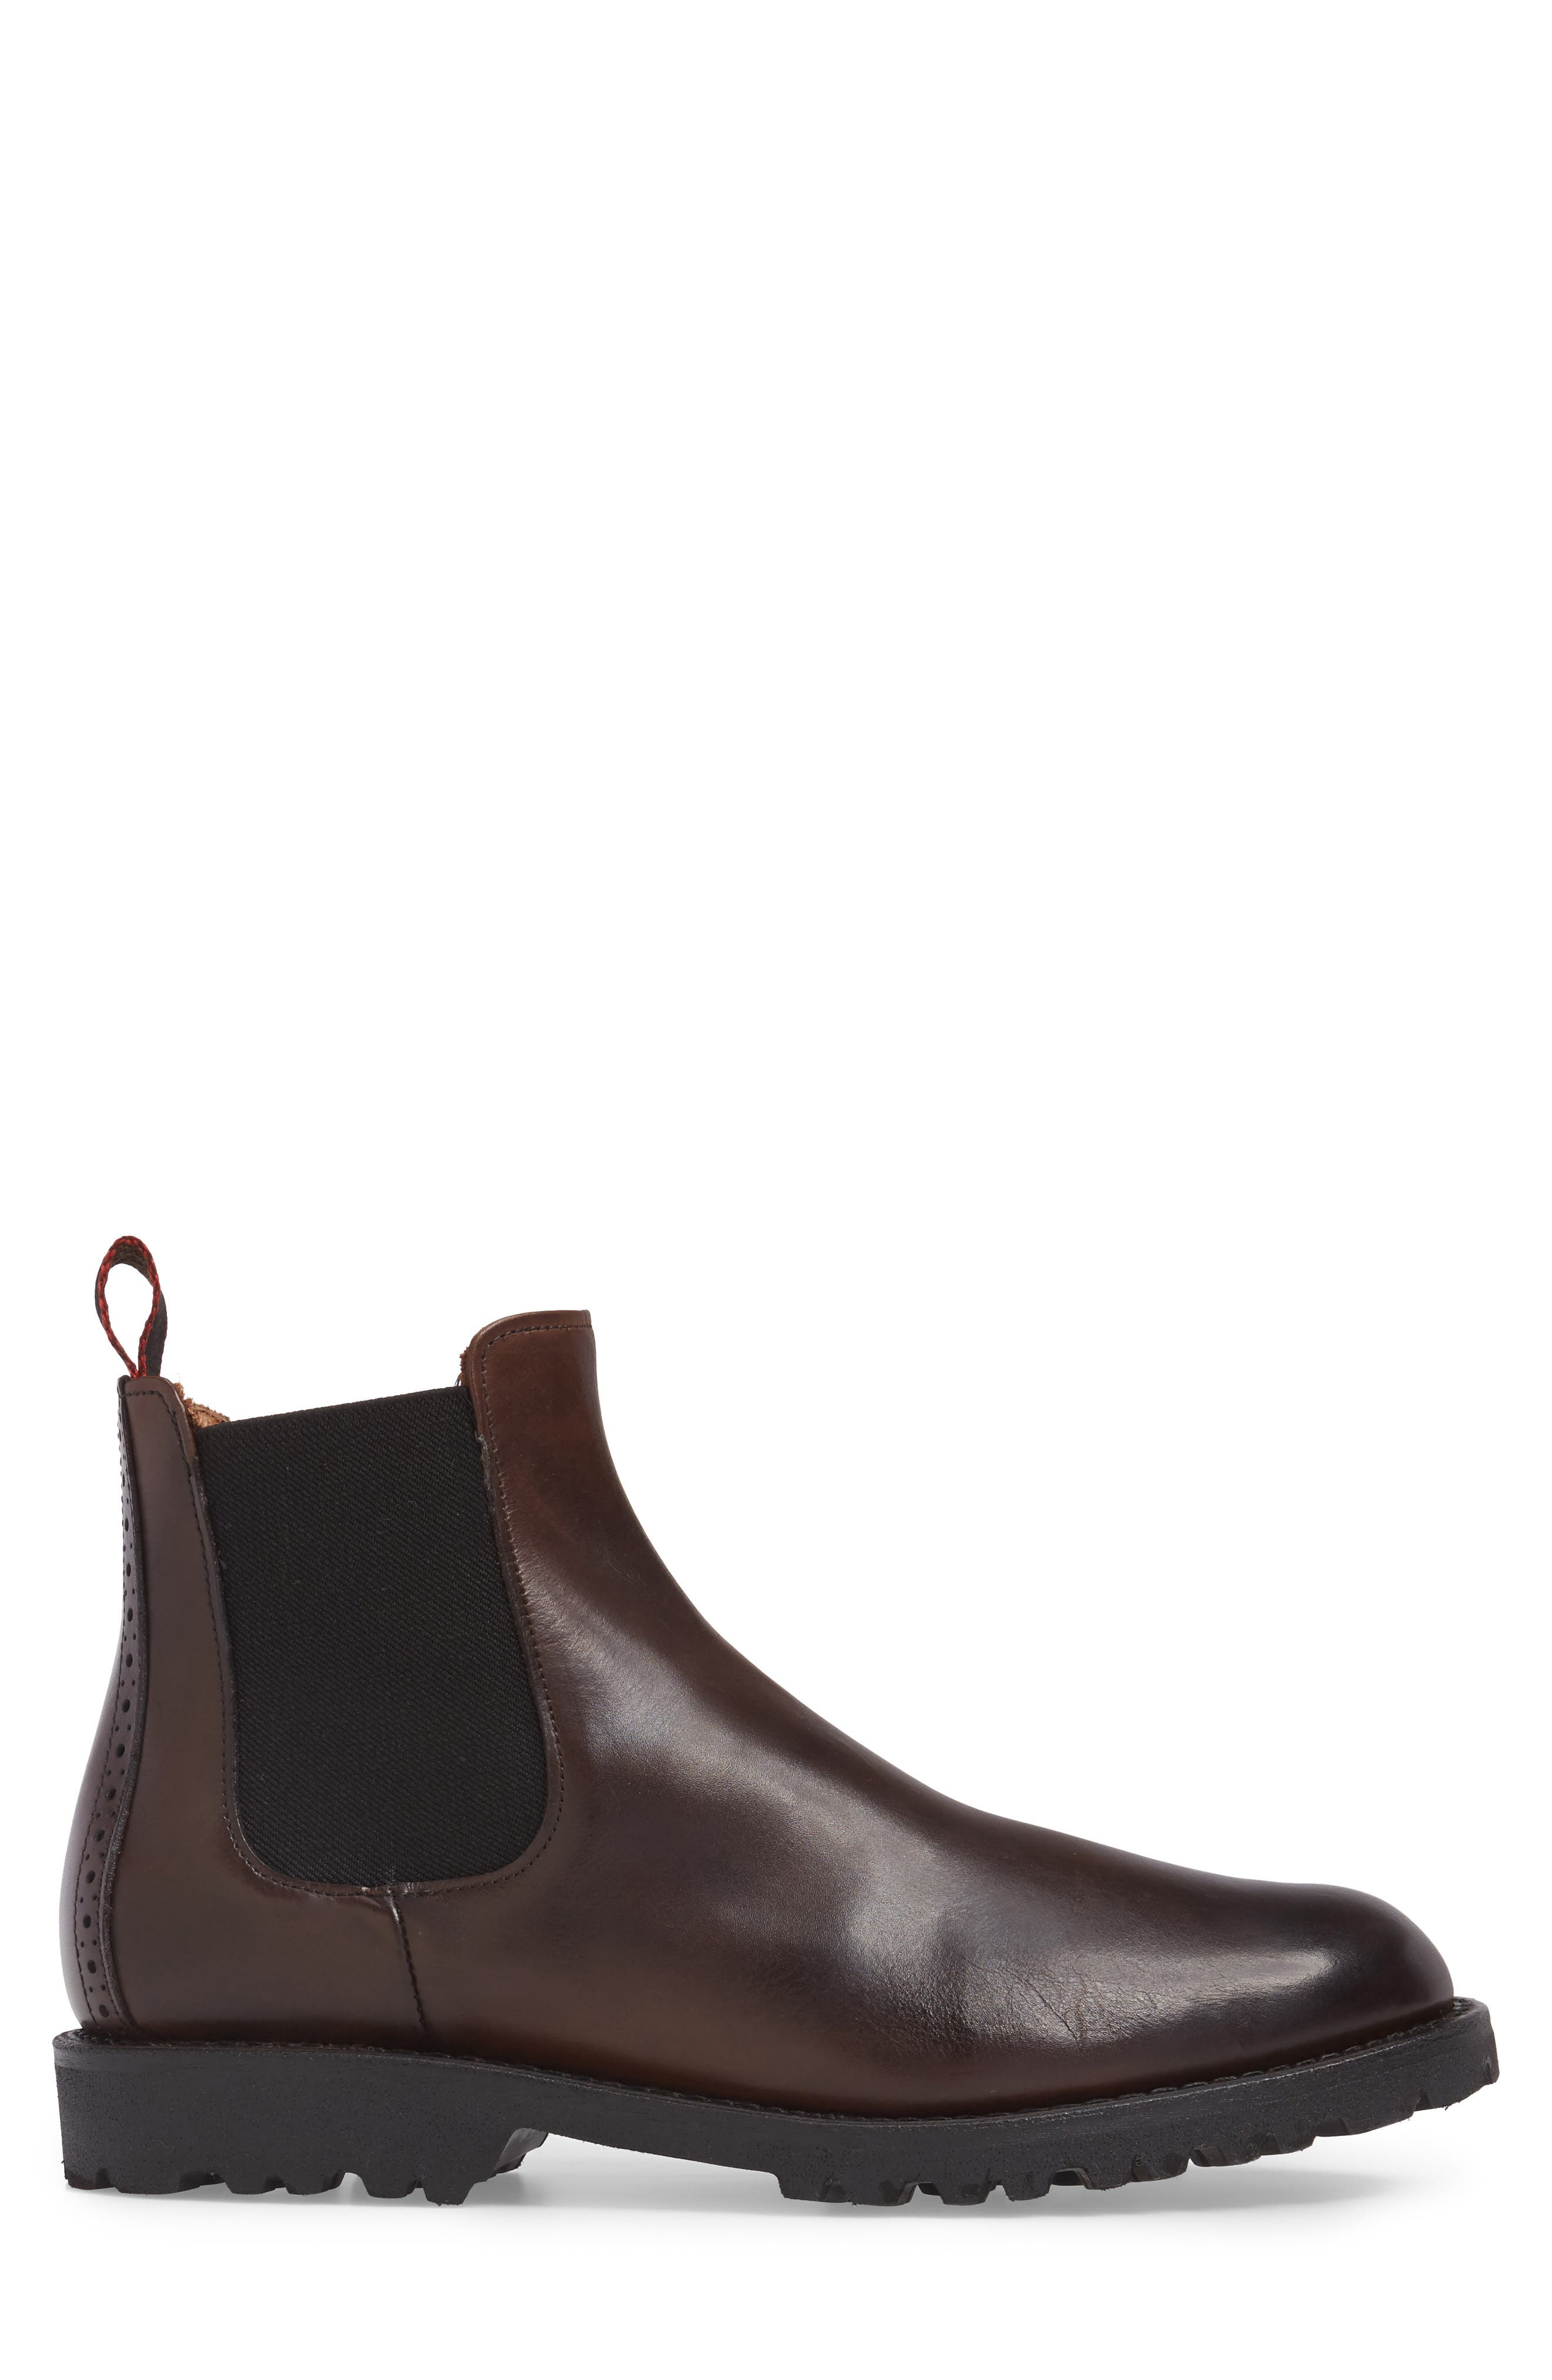 Tate Chelsea Boot,                             Alternate thumbnail 6, color,